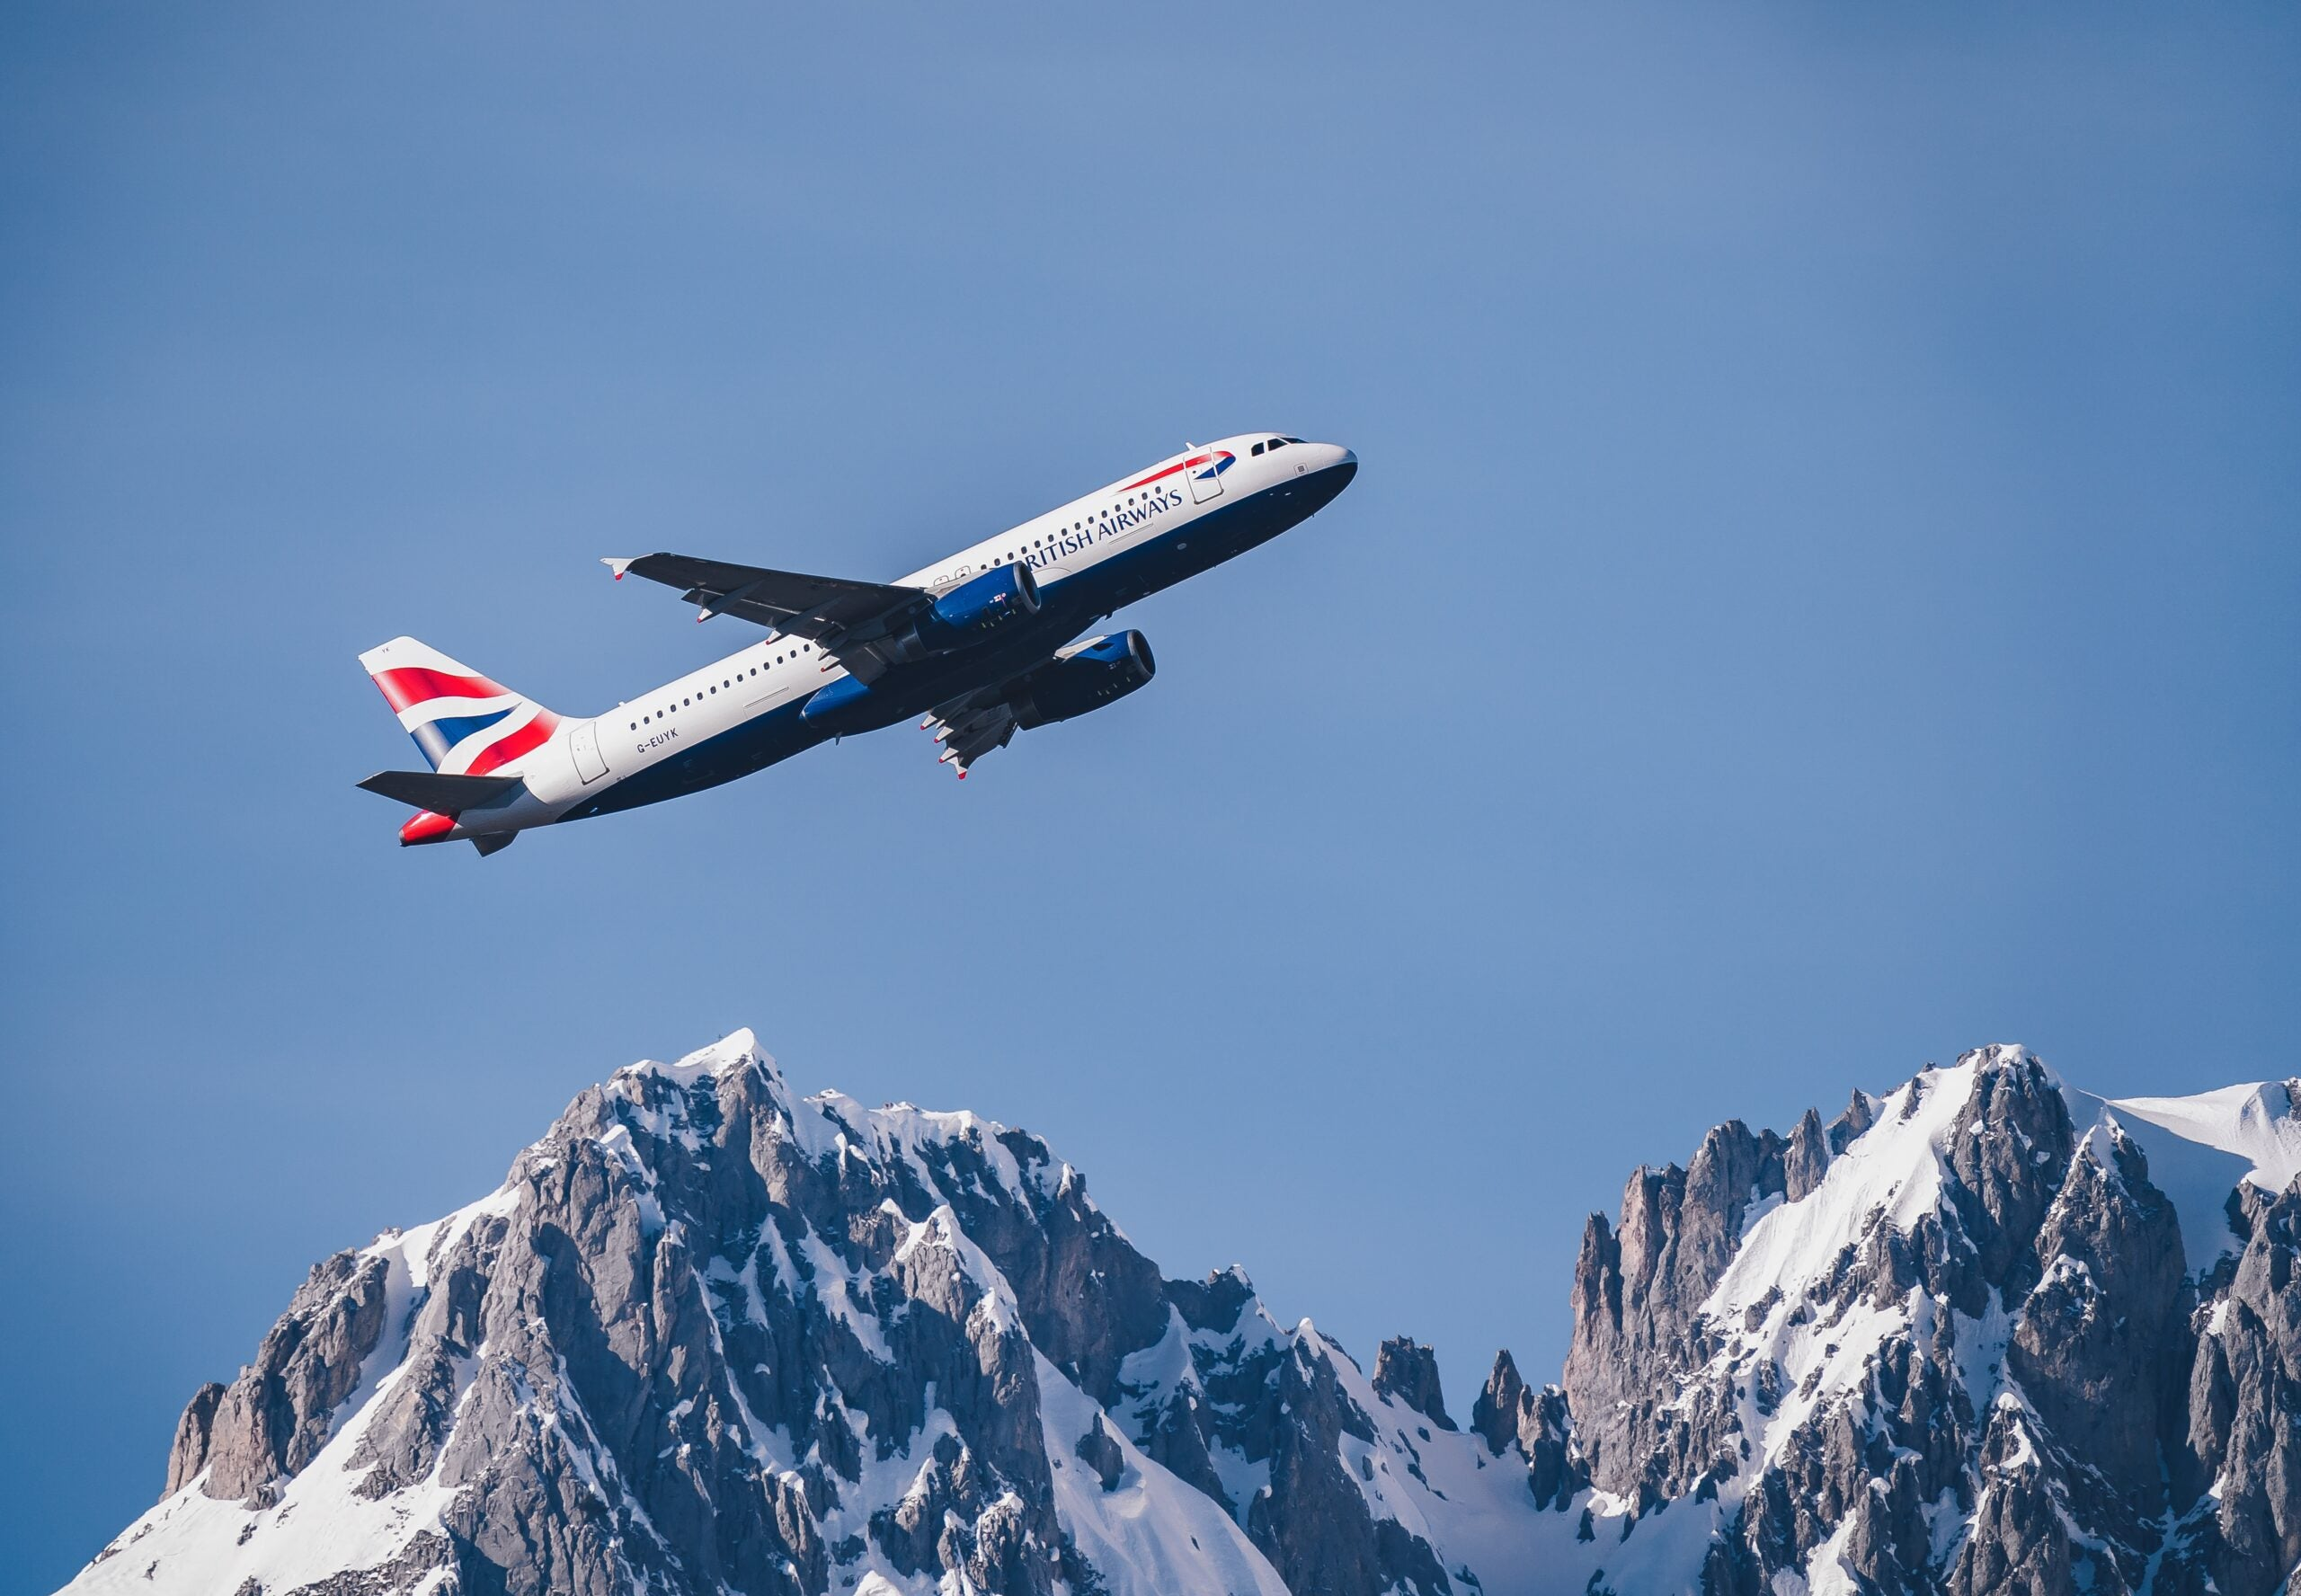 You can now cancel BA bookings for free even if made before pandemic